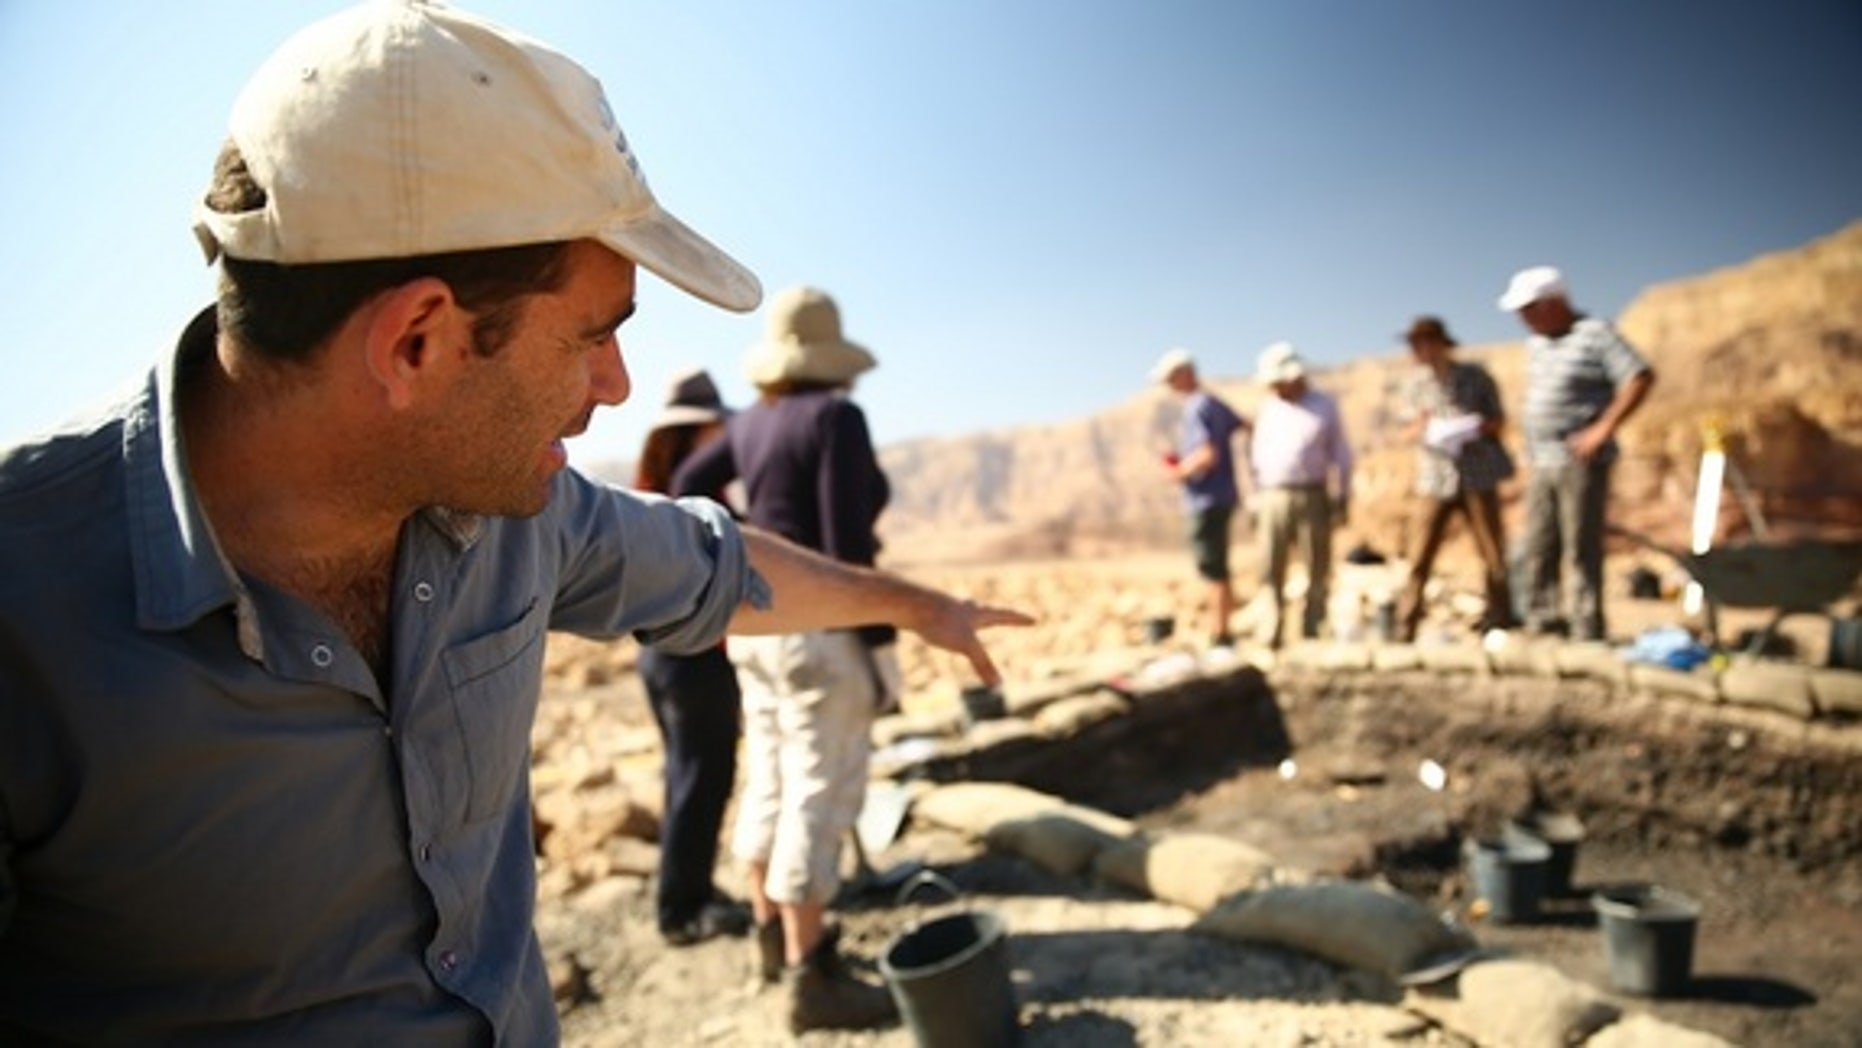 During excavations in February 2013, archaeologists found evidence that the Timna Valley mines in southern Israel date back to the reign of King Solomon.